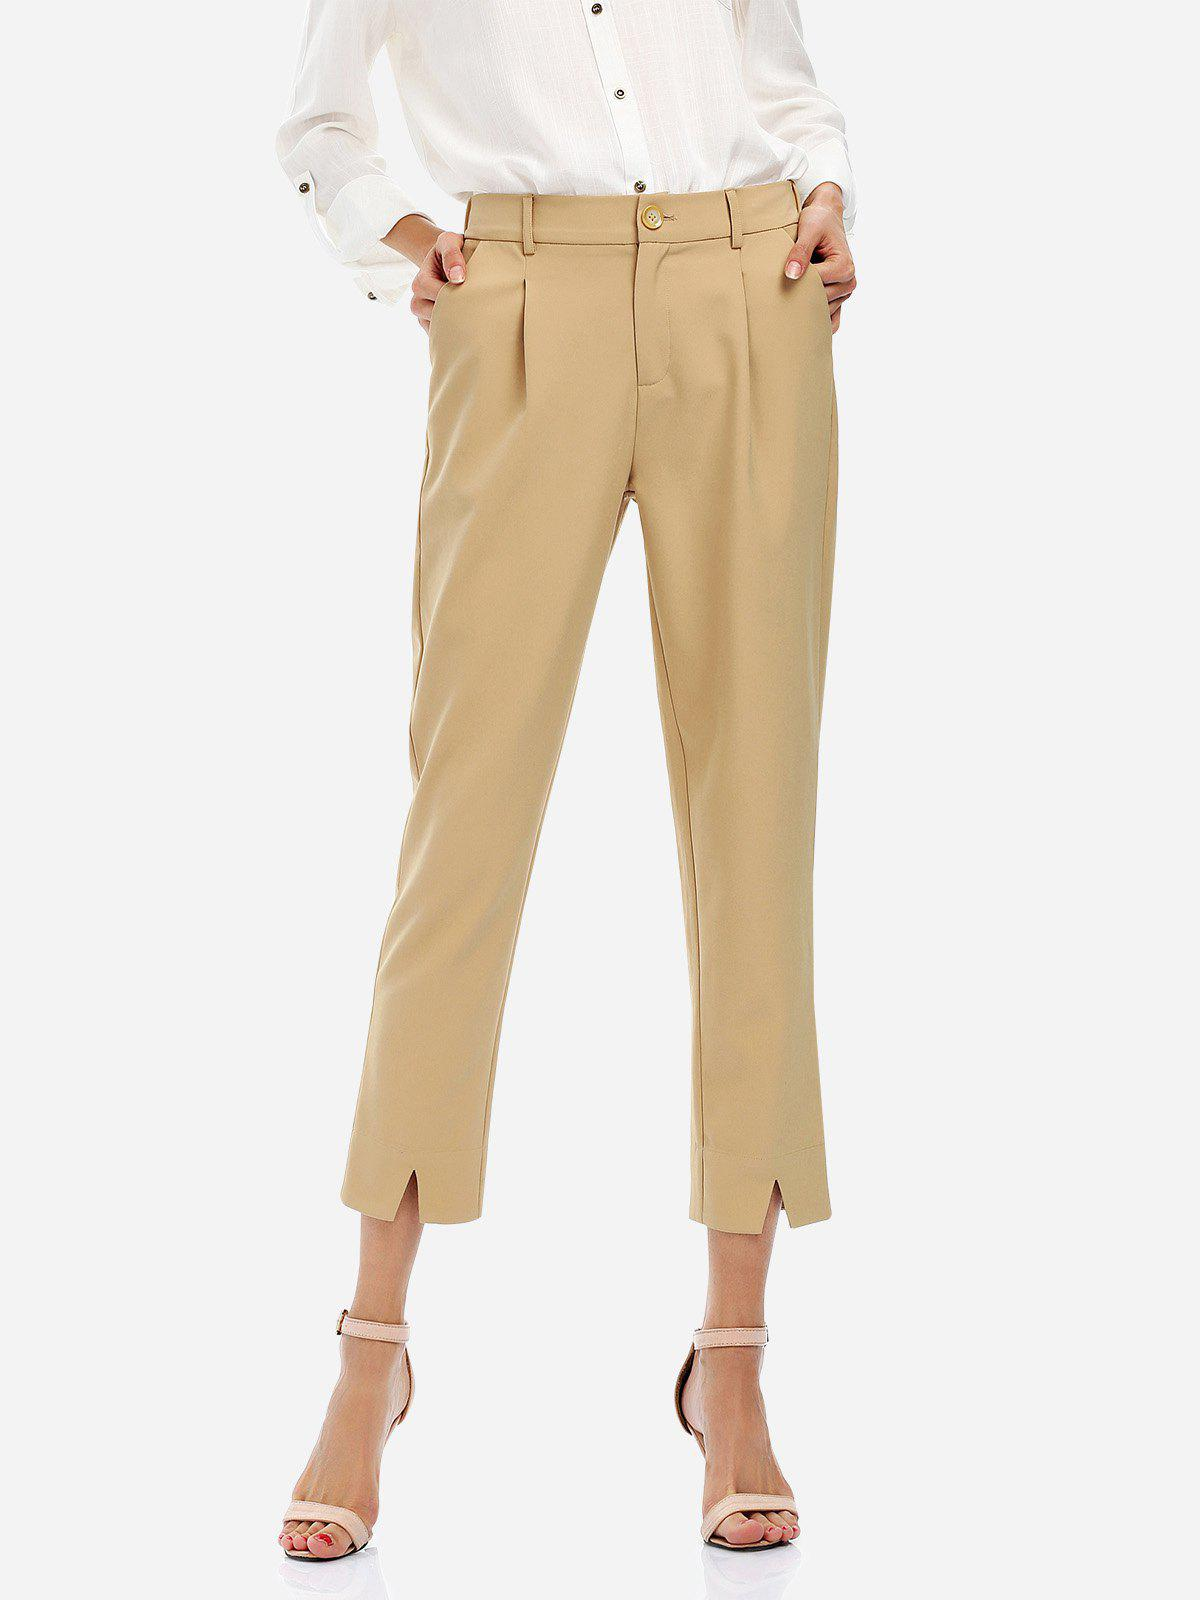 ZAN.STYLE Ankle Length Cropped Pants